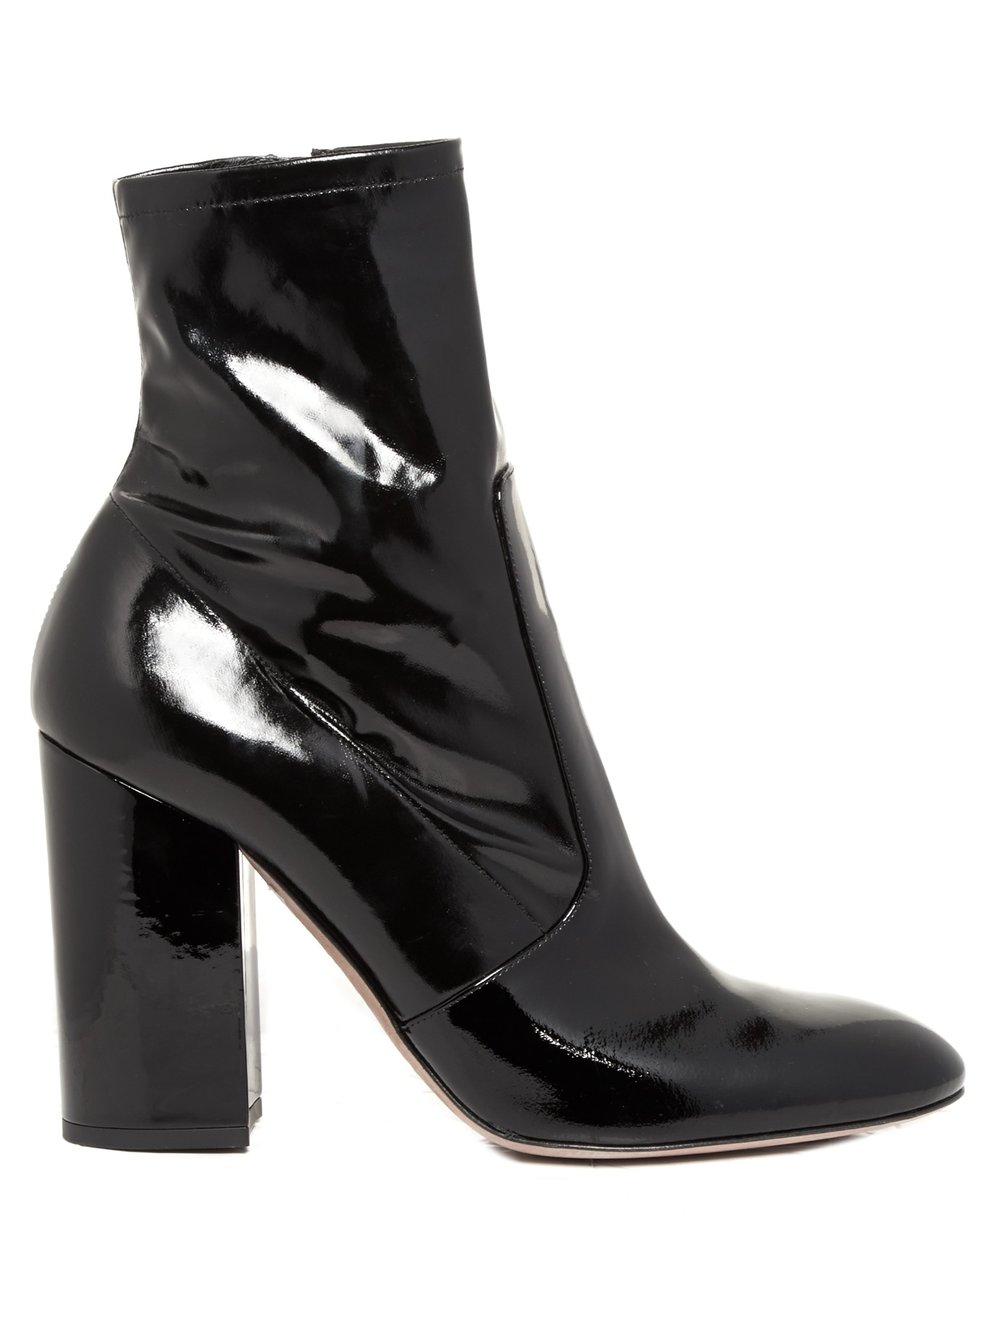 Valentino Women's patent block heeled ankle boots $1,280